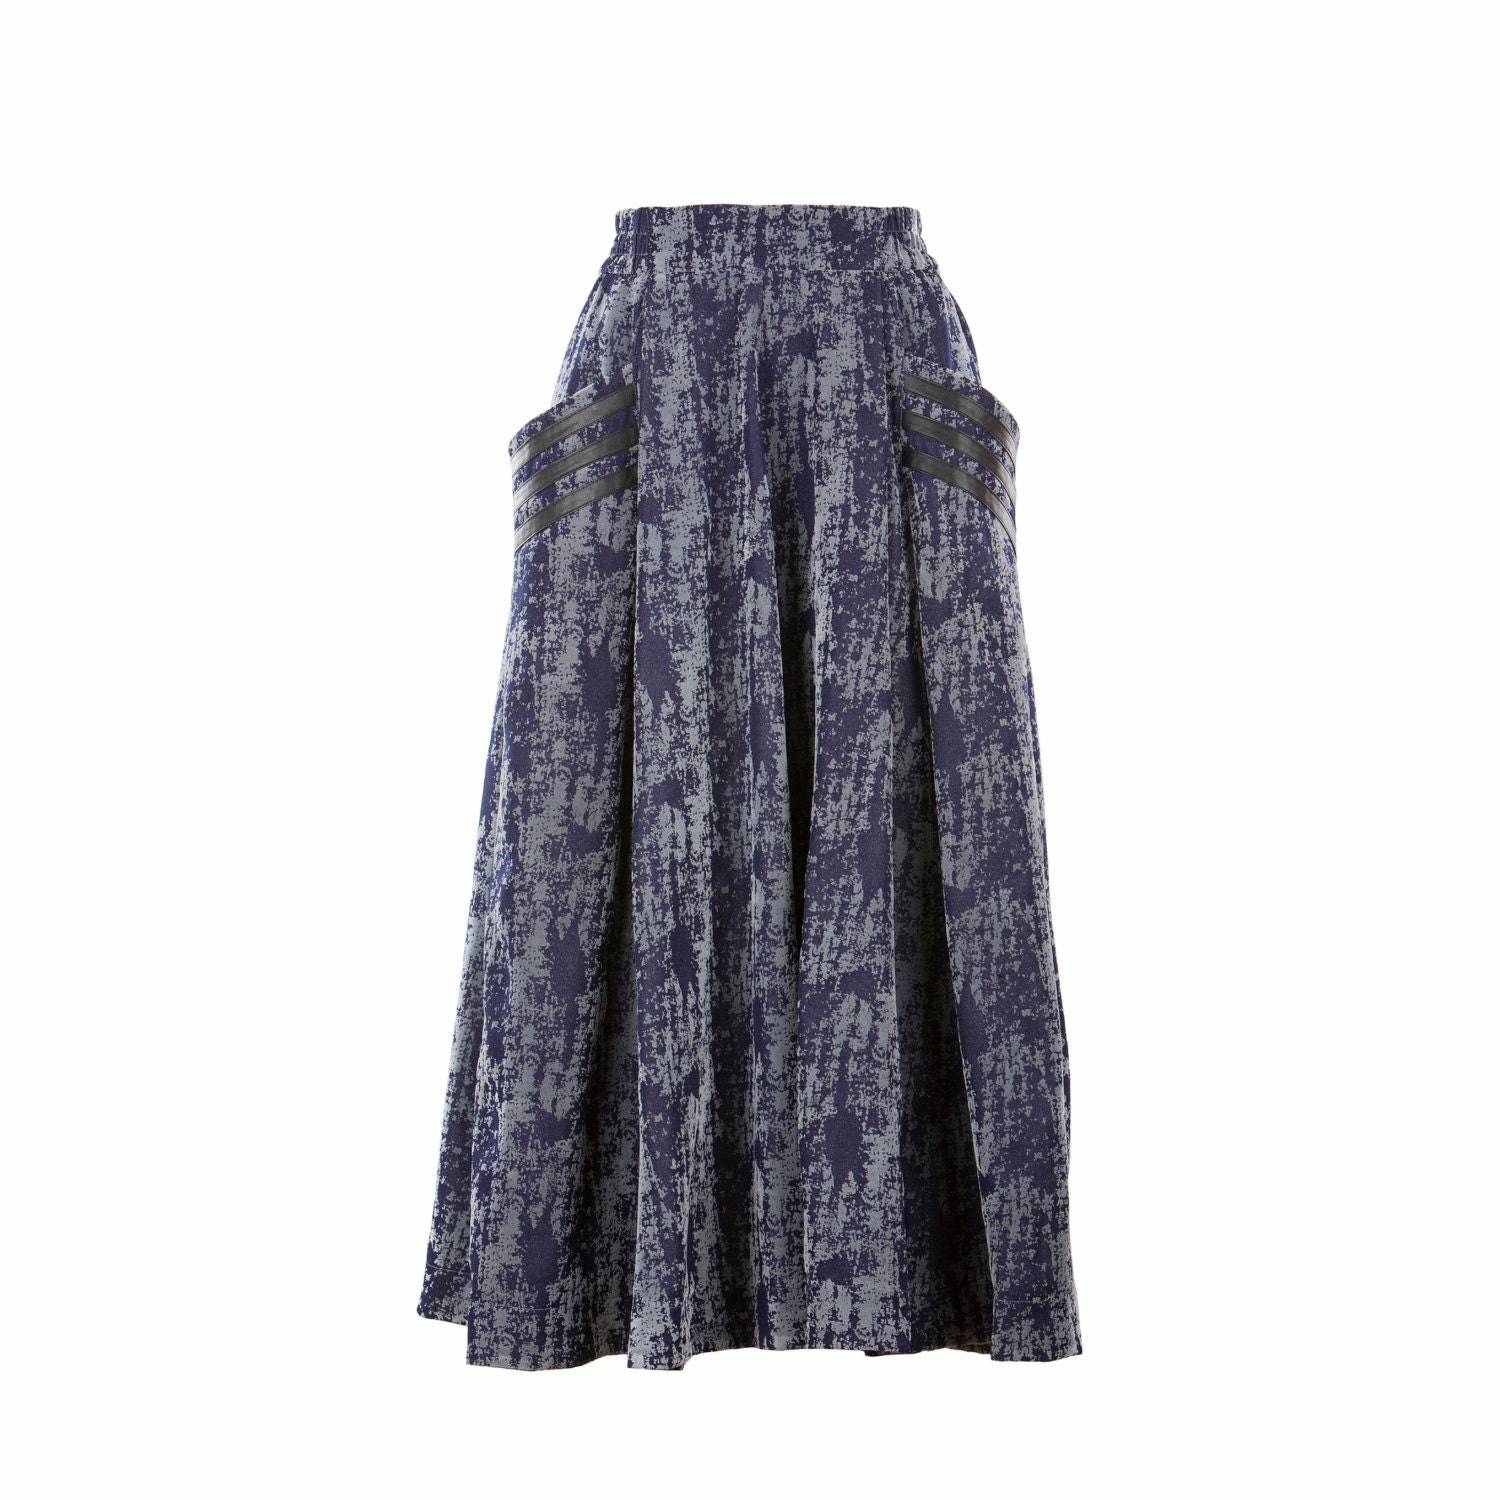 Denim skirt wide mid-calf skirt women's skirt fully